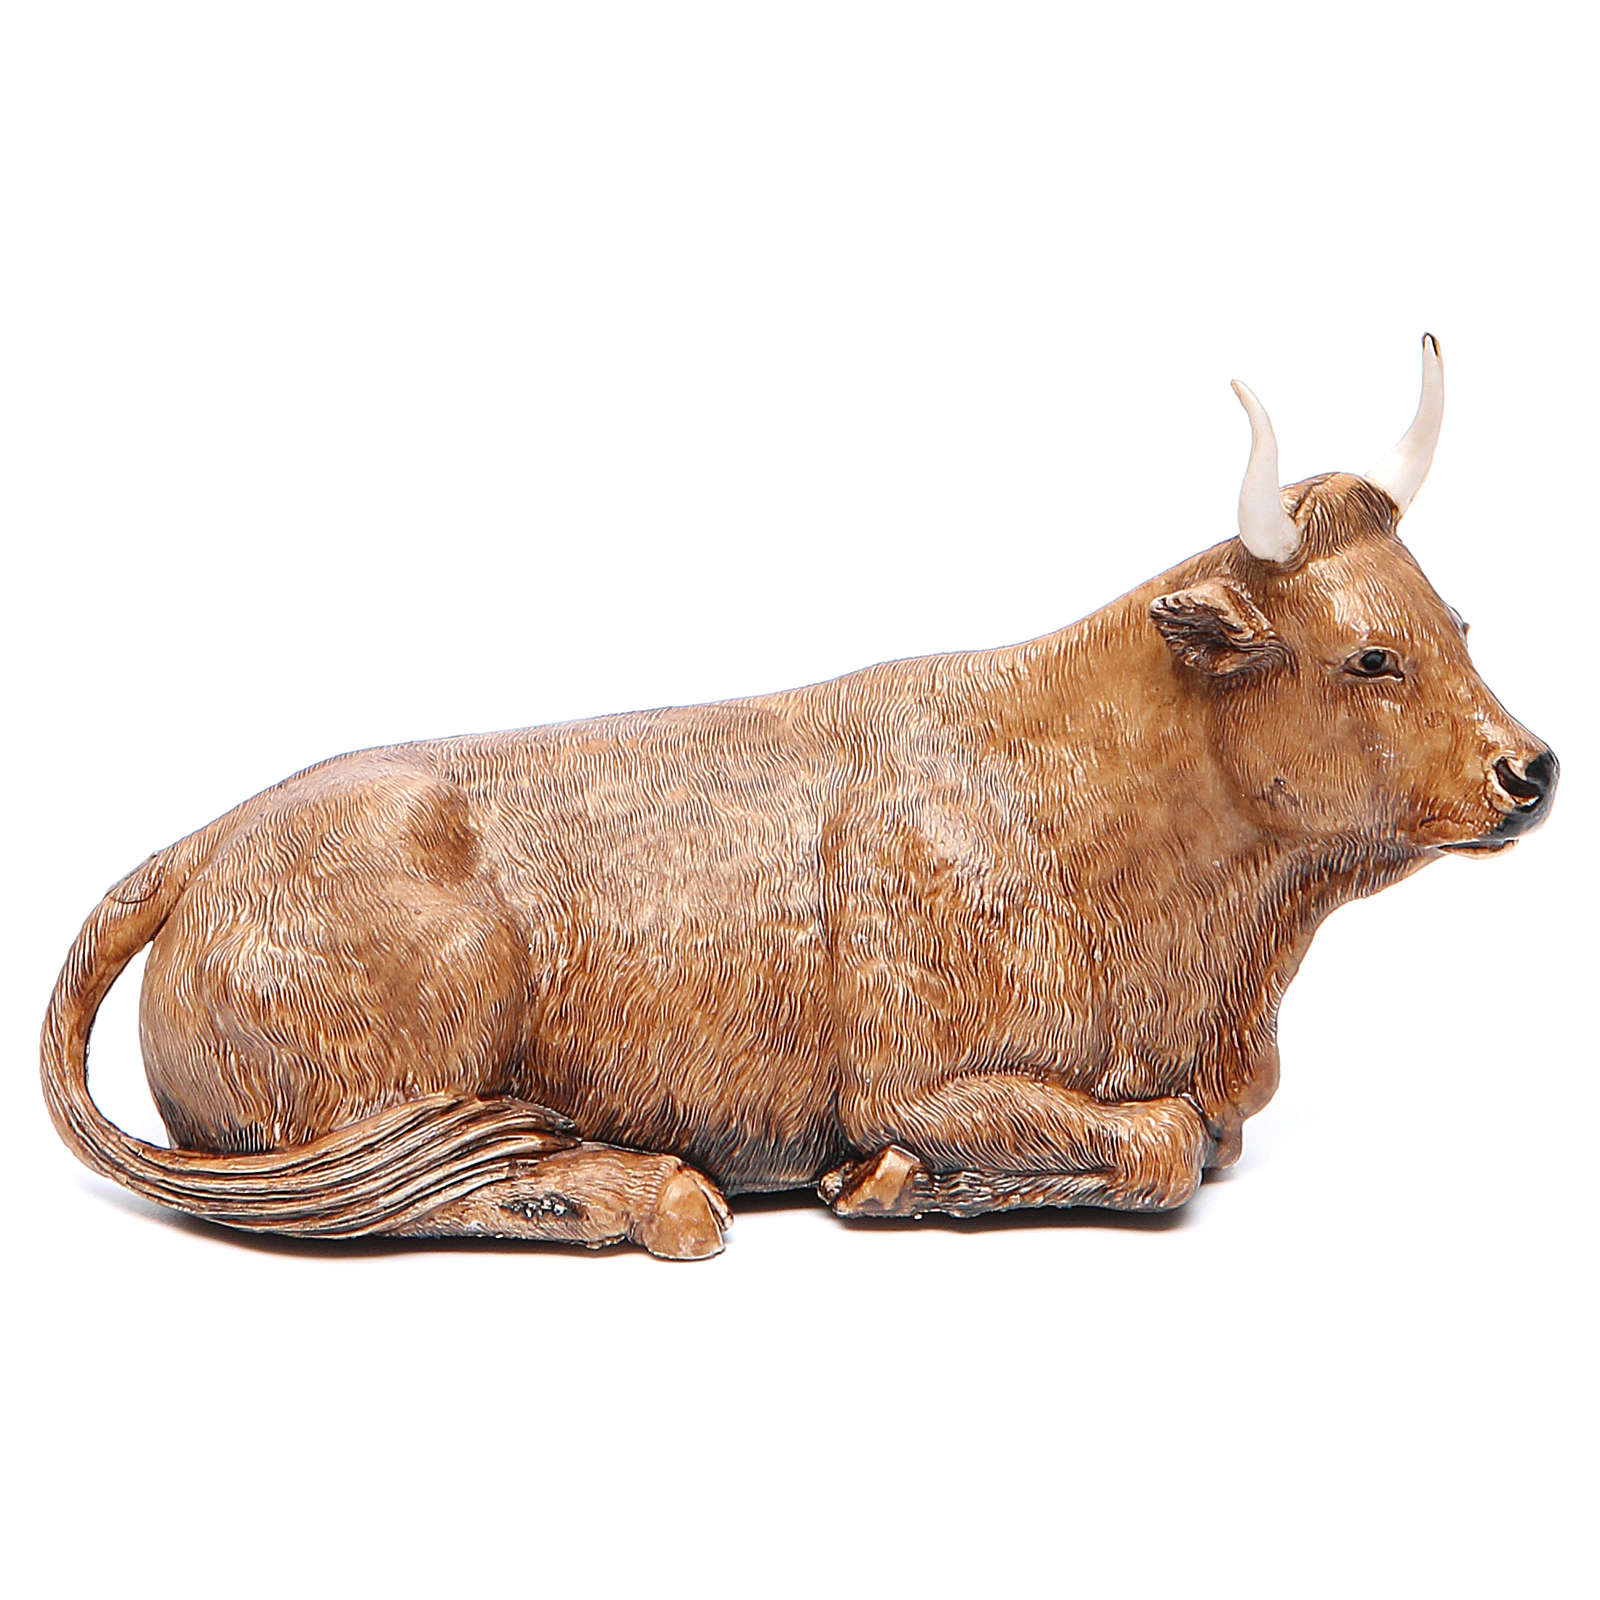 Ox measuring 12cm by Moranduzzo nativity scene 4